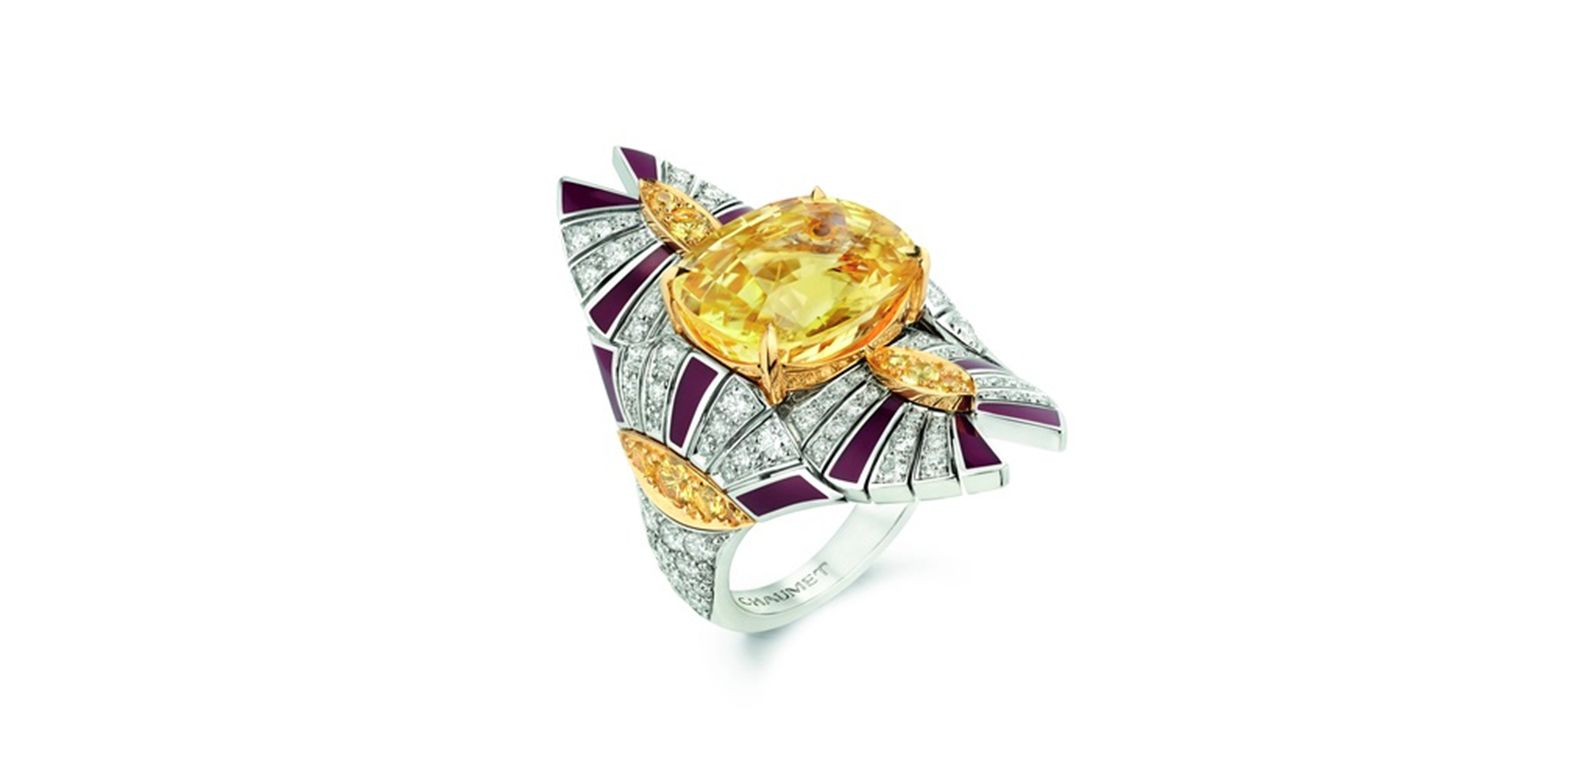 Ring in white gold and yellow gold, set with a 12.36-carat oval yellow Ceylon sapphire, round yellow sapphires, lacquer and brilliant-cut diamonds. Terres d'Or, Trésors d'Afrique, Chaumet